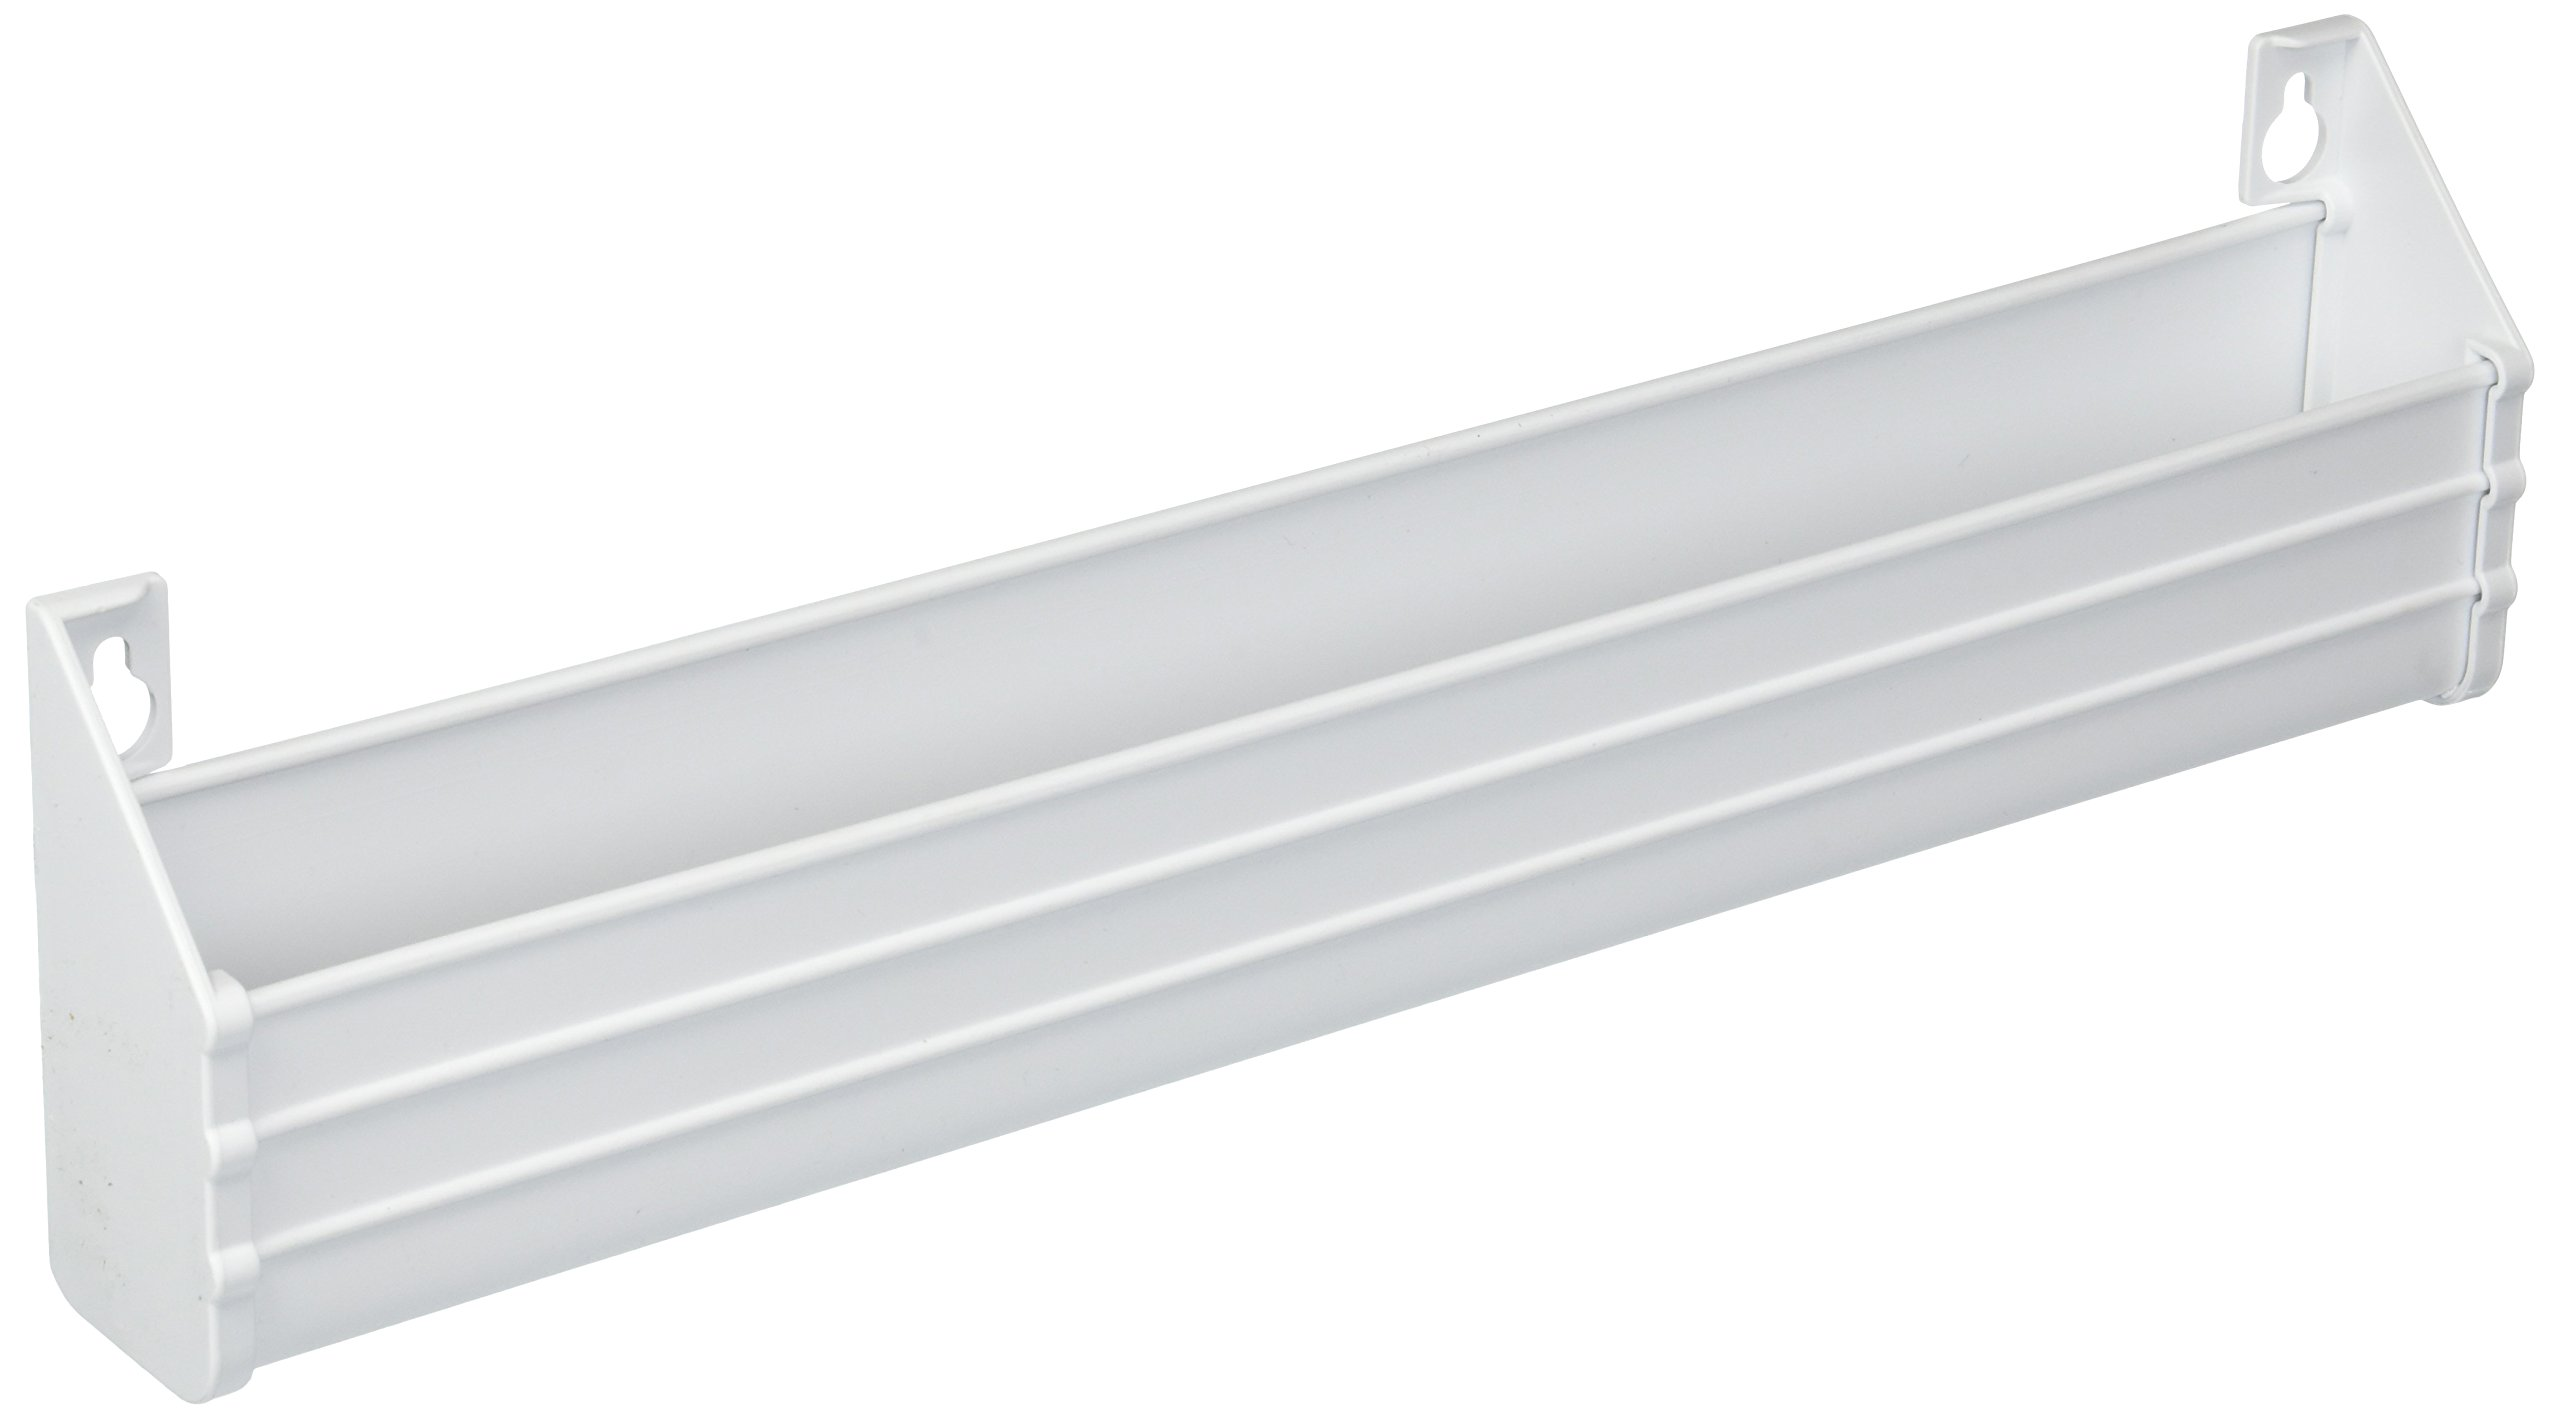 Rev-A-Shelf 14 in White Polymer Slim Series Tip-Out Tray, by Rev-A-Shelf